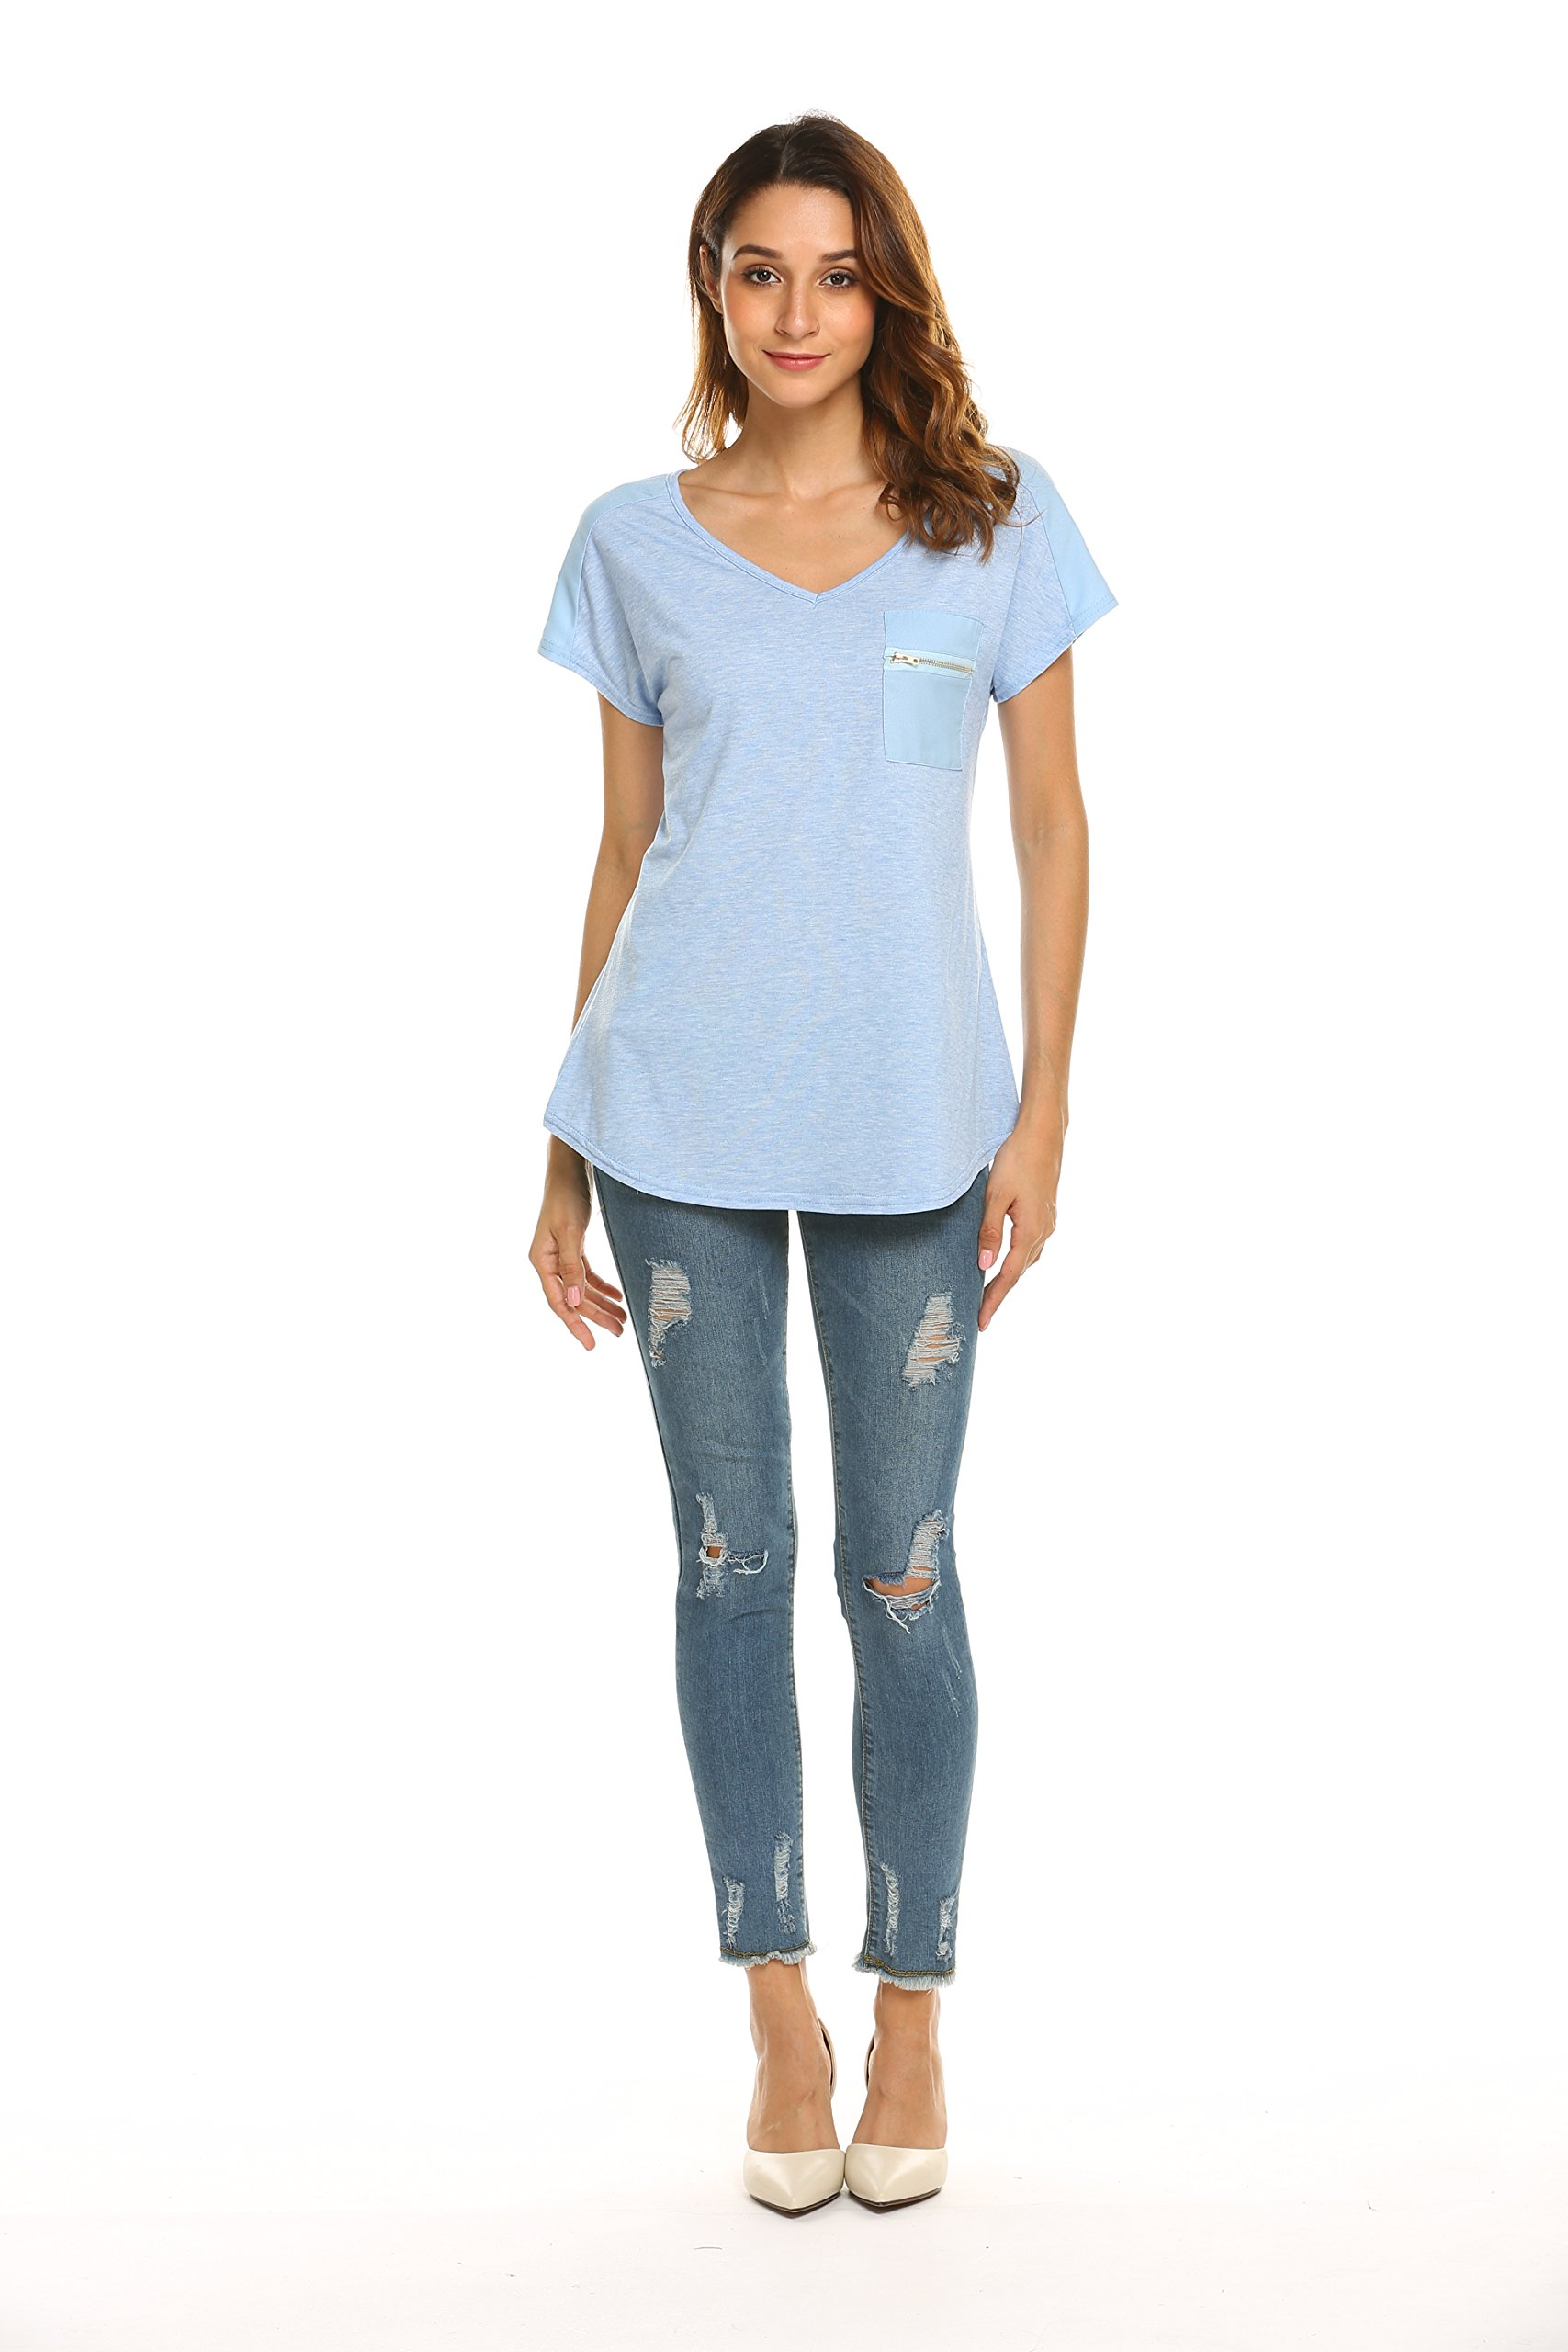 OURS Women's Casual Fashion Simple Comfy Knit Business Work T Shirt(Blue, S) by OURS (Image #5)